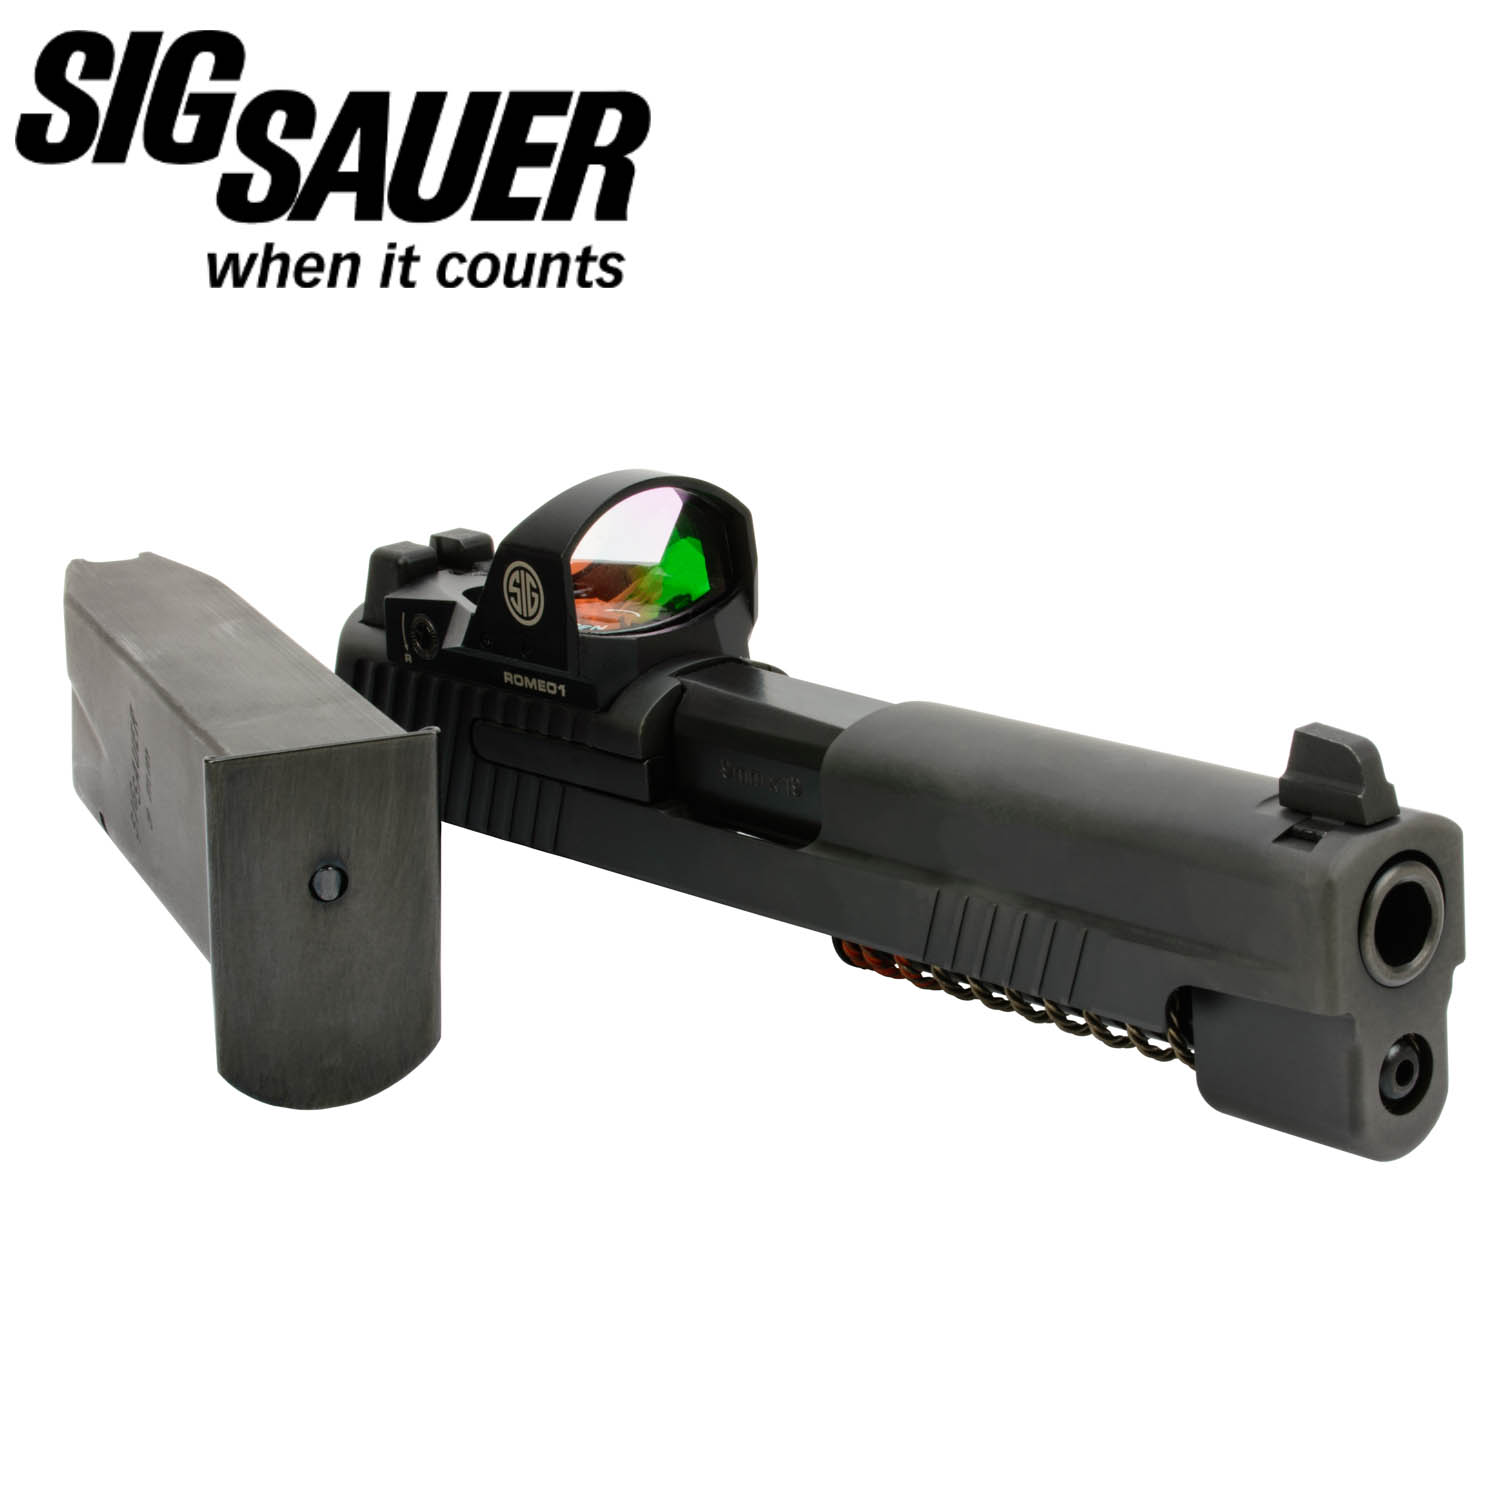 Sig Sauer P226 9mm Caliber X-Change Kit with Romeo1 Red Dot Sight: Midwest  Gun Works